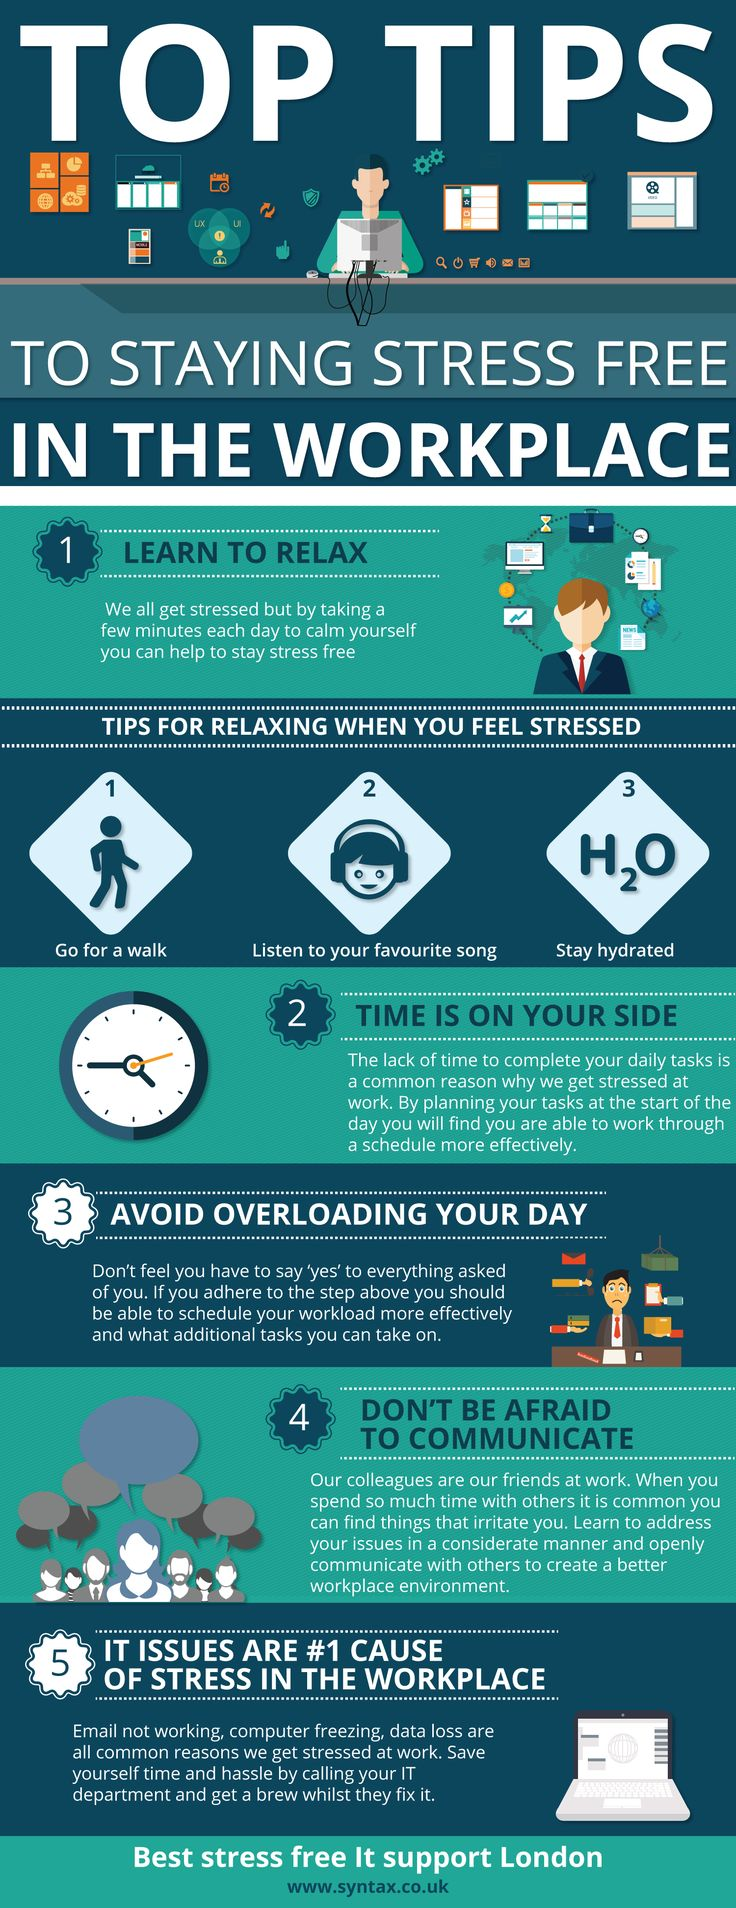 office lighting levels at work. office safety tips the top to staying stress free in workplace infographic was designed help everyone who works an reduce their lighting levels at work